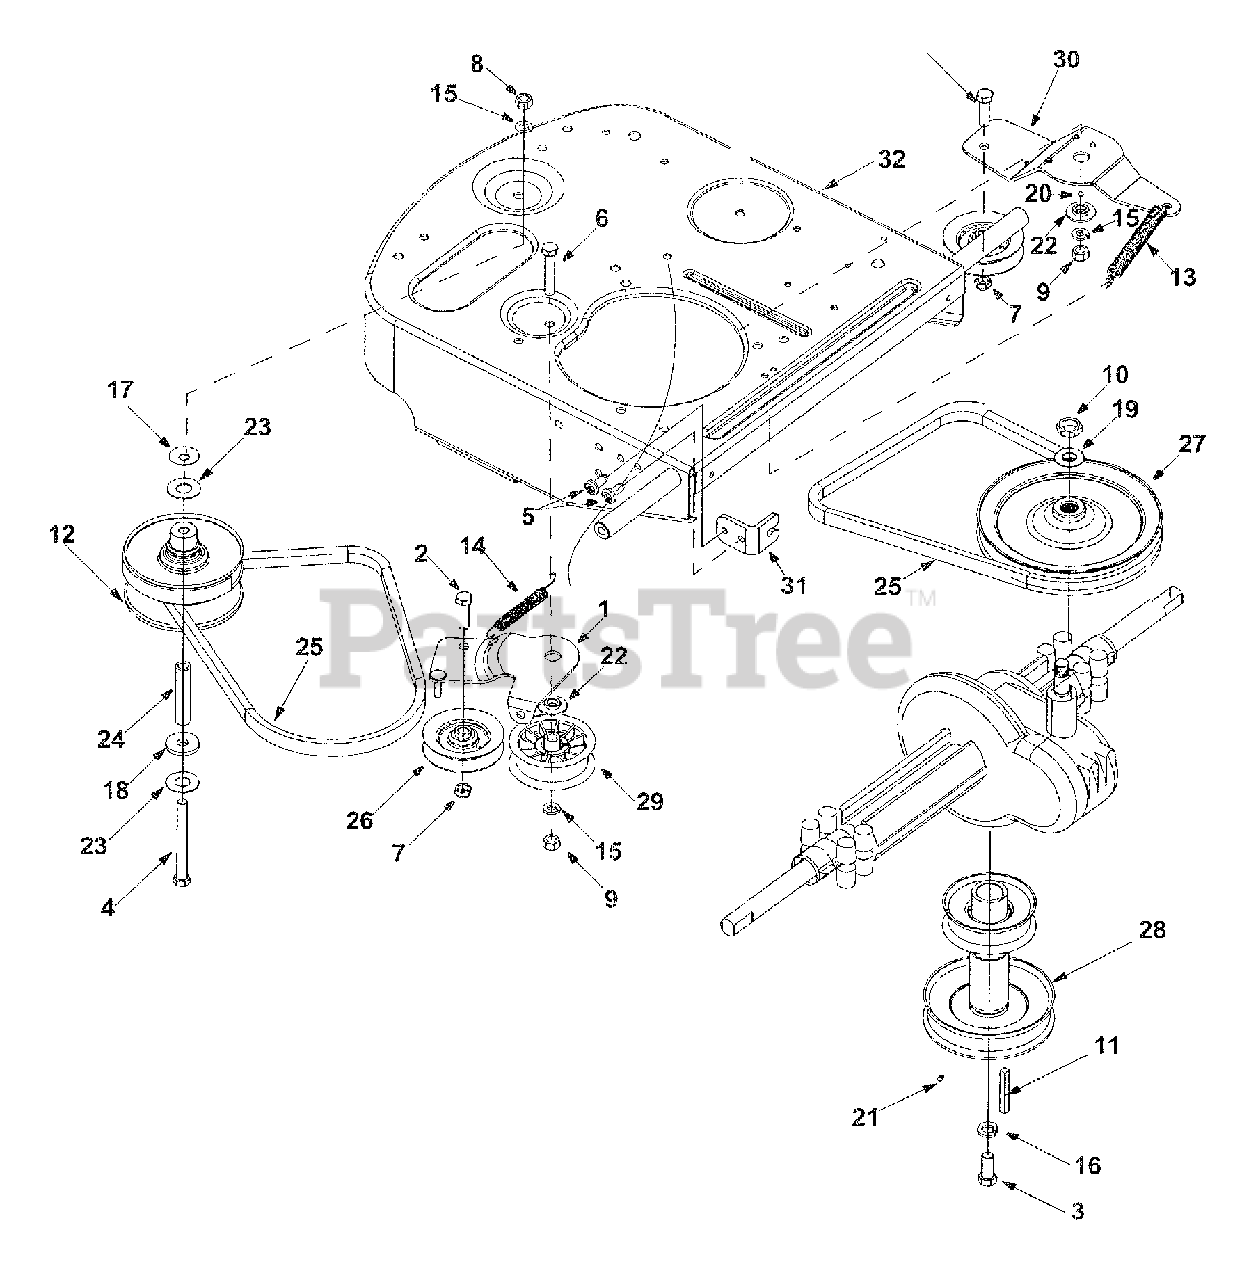 Cub Cadet Parts on the Drive, Variable Diagram for 1027